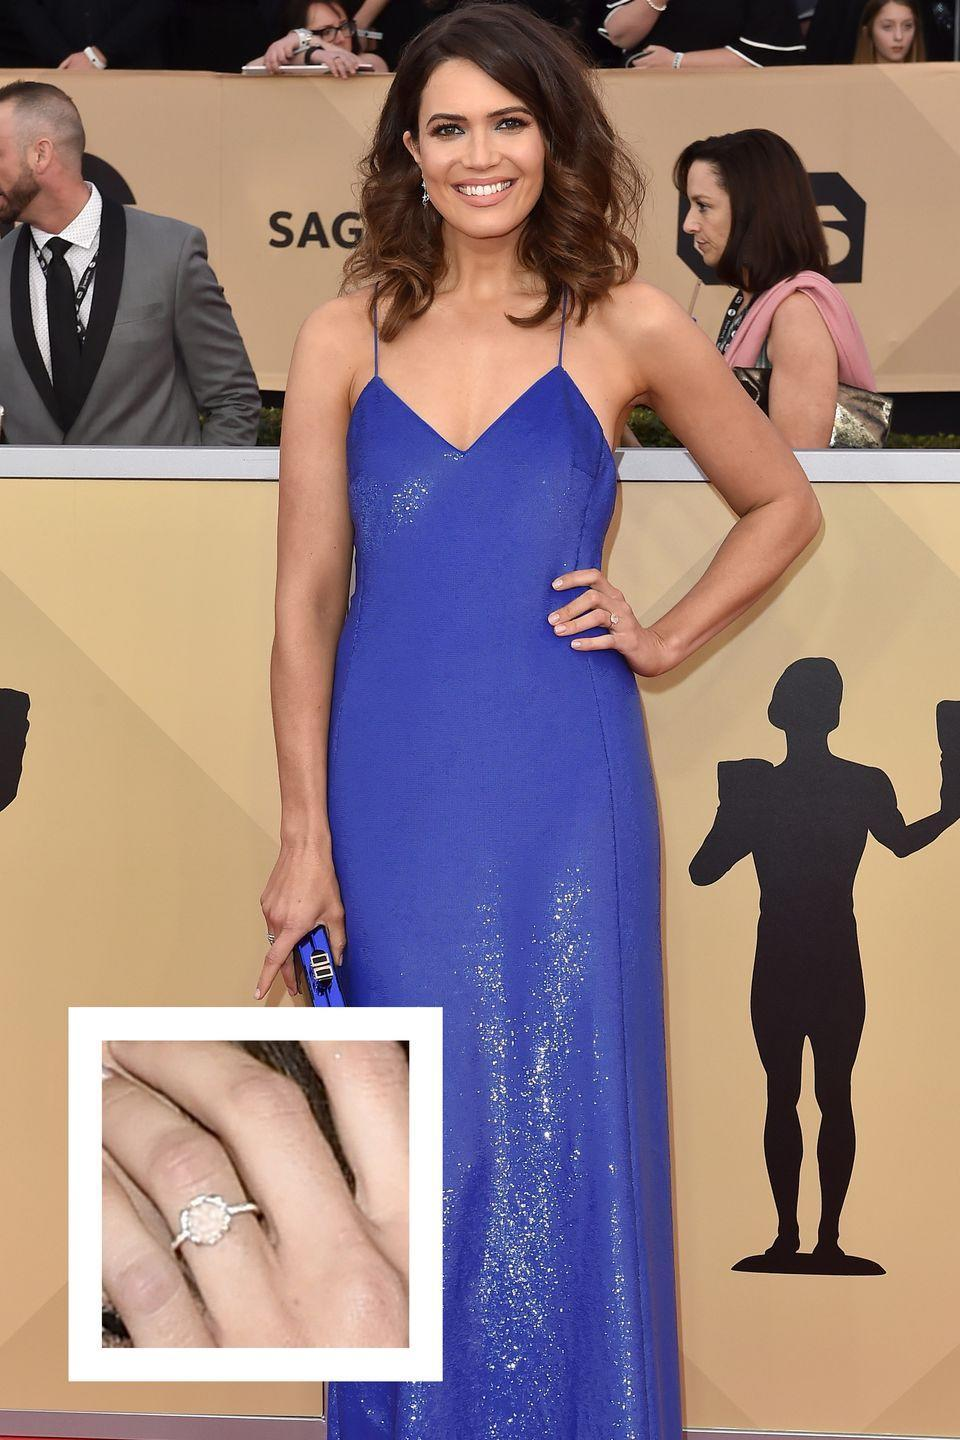 """<p>Moore gave fans a first peek at her engagement ring from musician Taylor Goldsmith at the Emmy Awards in 2017. The round-cut solitaire diamond ring is set in a simple yet elegant rose gold band, <a href=""""http://people.com/style/mandy-moore-engagement-ring/"""" rel=""""nofollow noopener"""" target=""""_blank"""" data-ylk=""""slk:People reports."""" class=""""link rapid-noclick-resp""""><em>People</em> reports.</a></p>"""